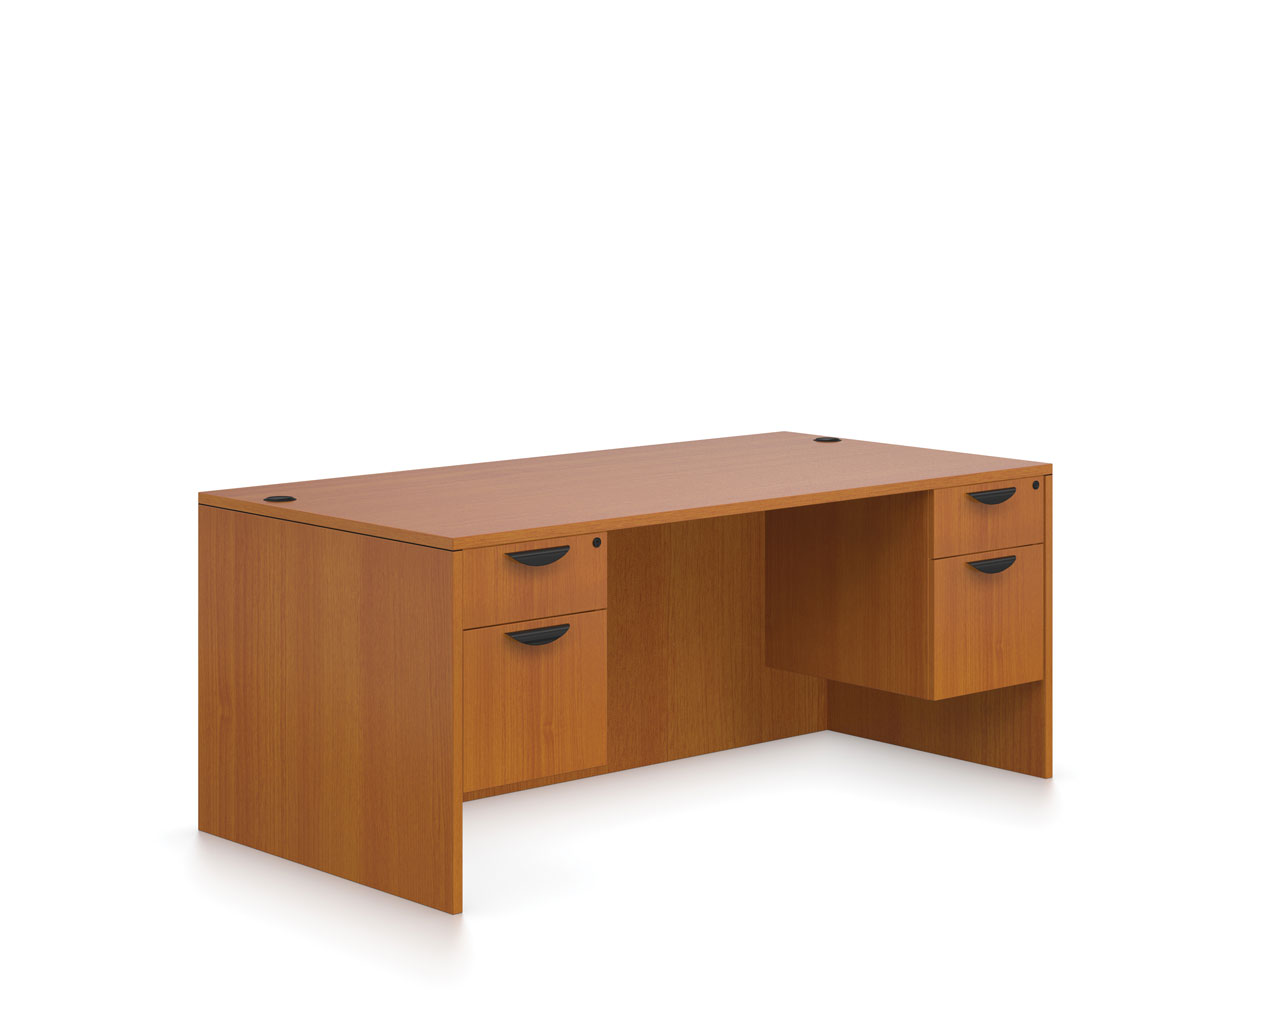 Affordable Office Furniture Desks from OTG - Shown in American Cherry woodgrain